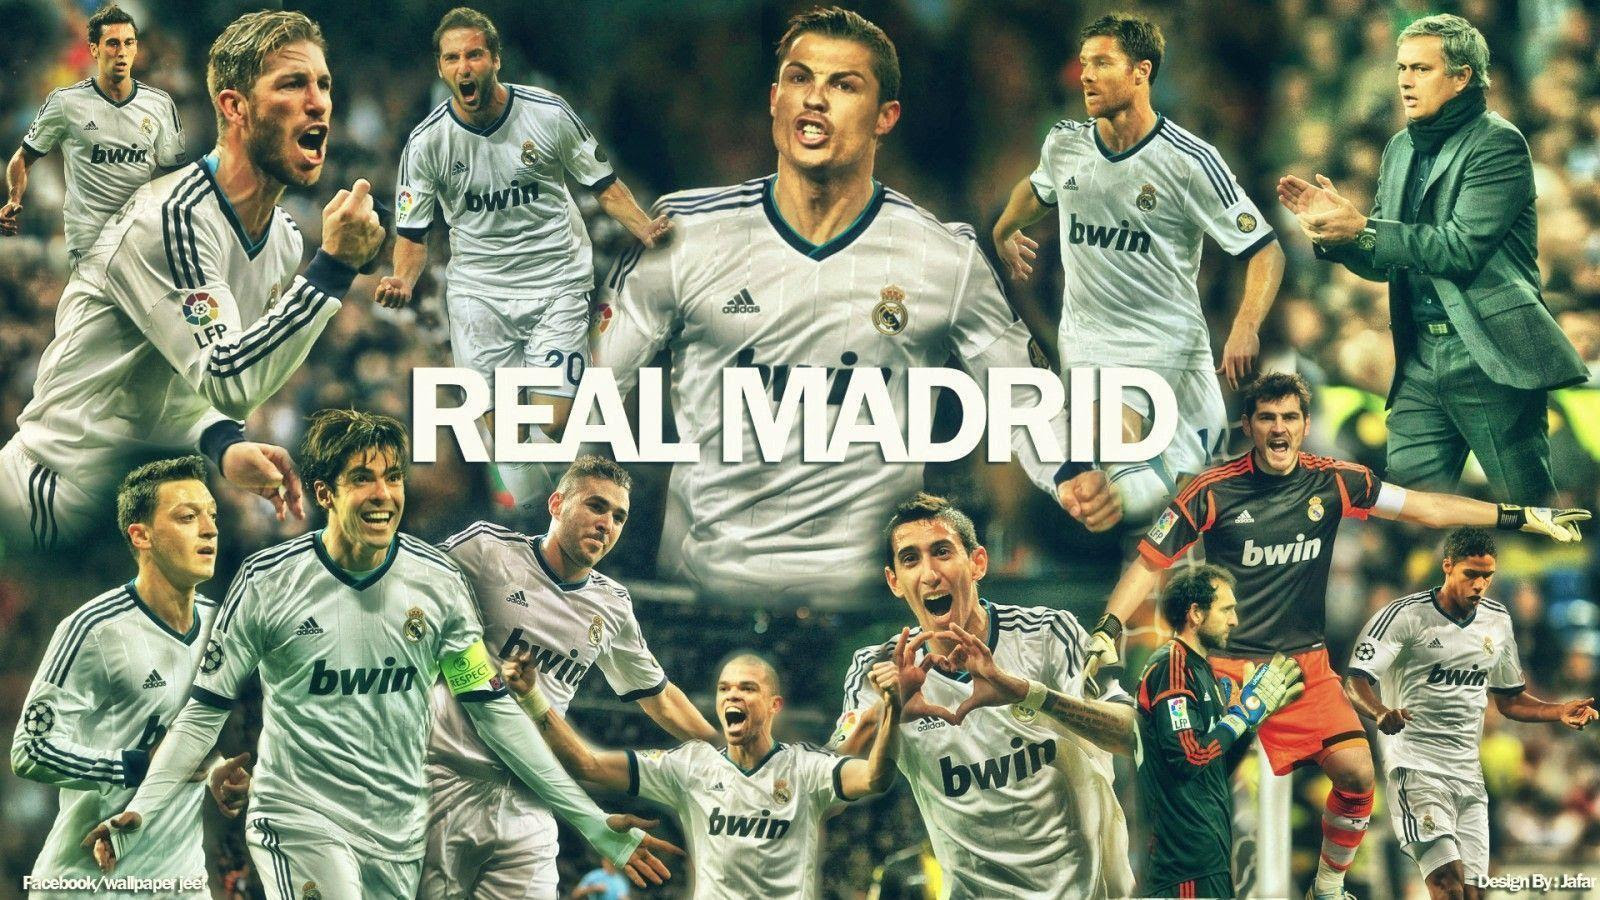 Real Madrid Hd Wallpapers 2017 Wallpaper Cave